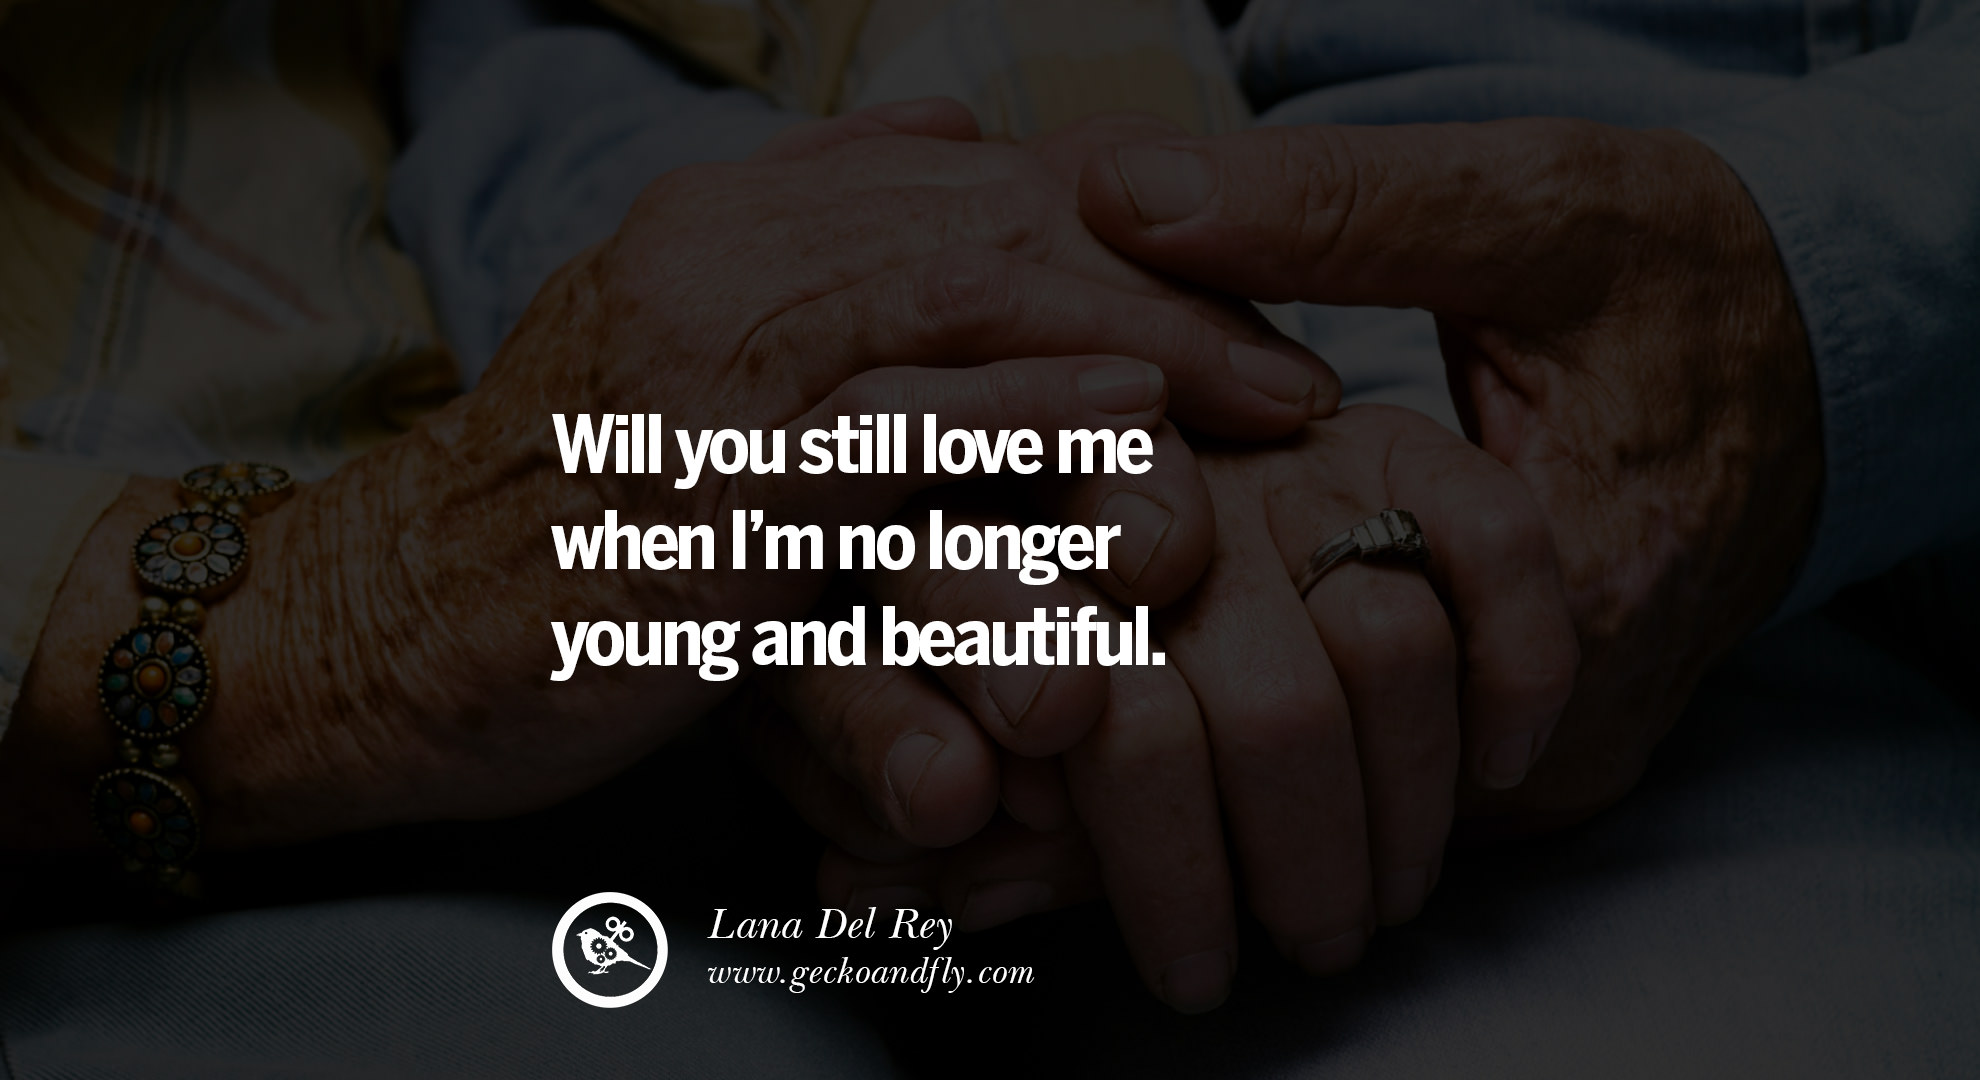 Pinterest Life Quotes: 40 Romantic Quotes About Love Life, Marriage And Relationships